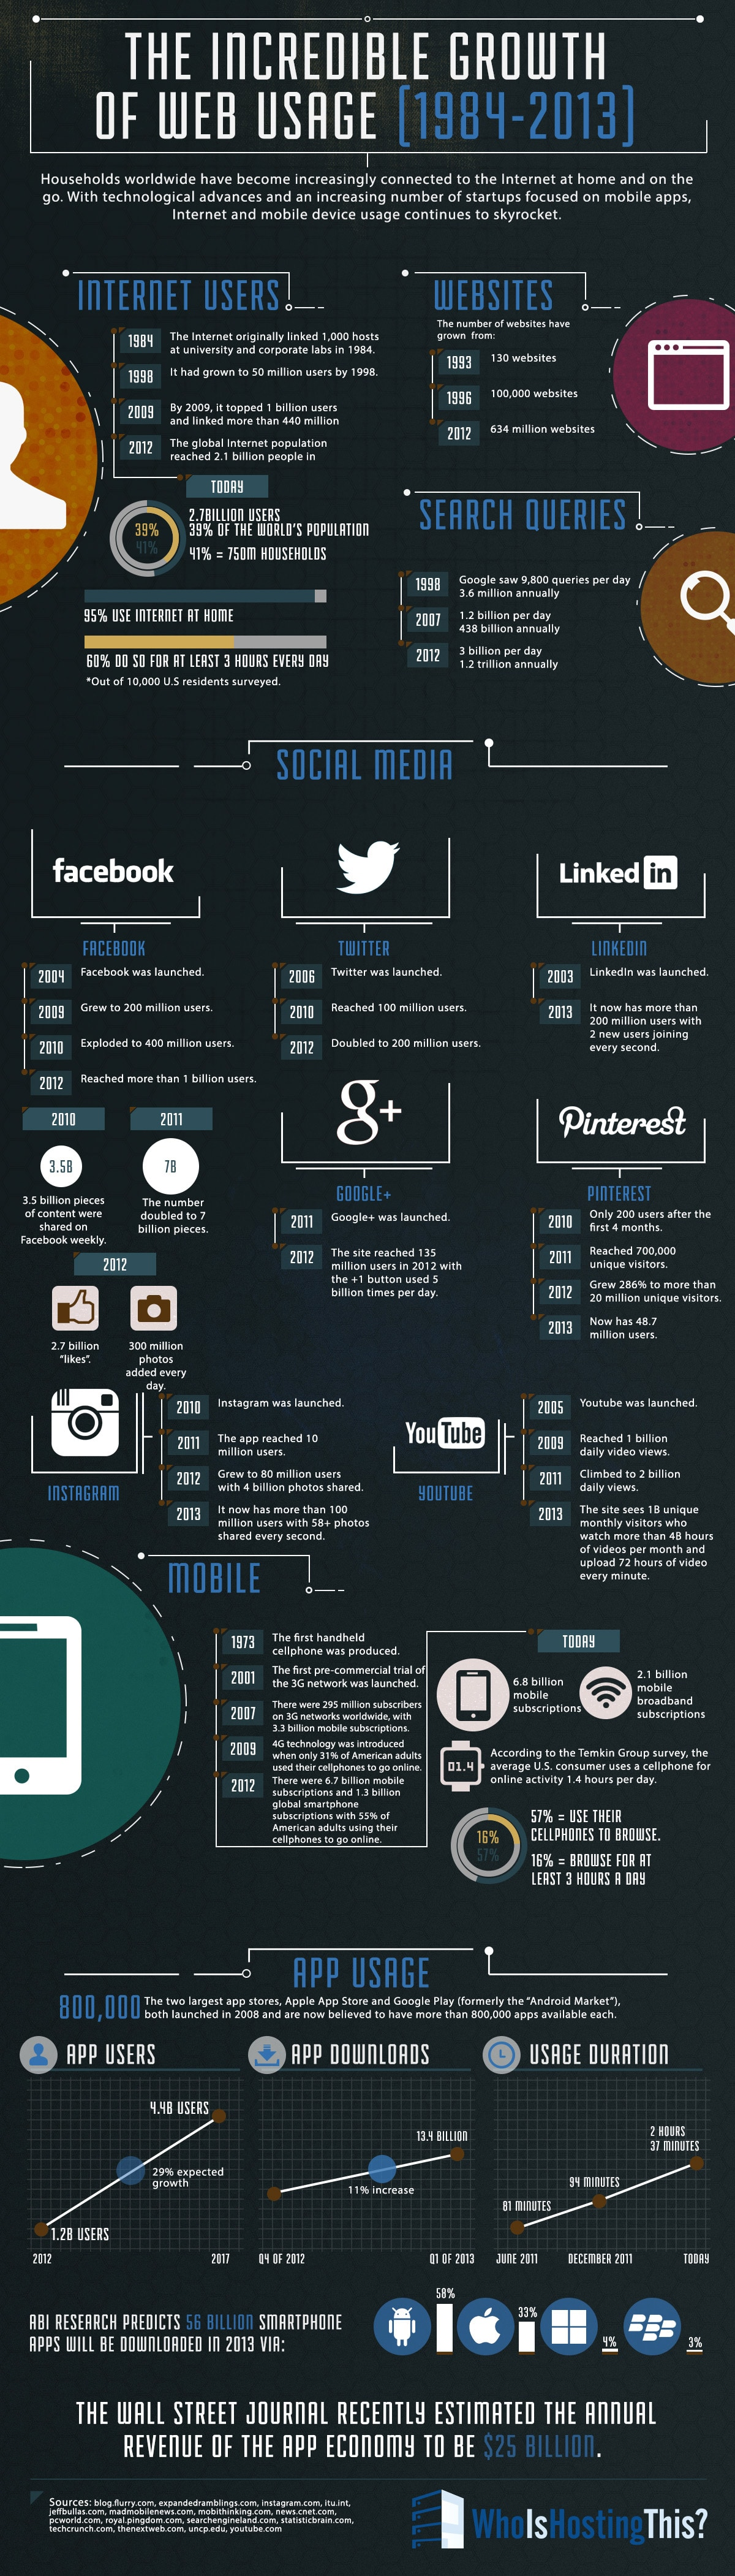 Mind-Boggling Internet Growth From 1984 – 2013 [Infographic]